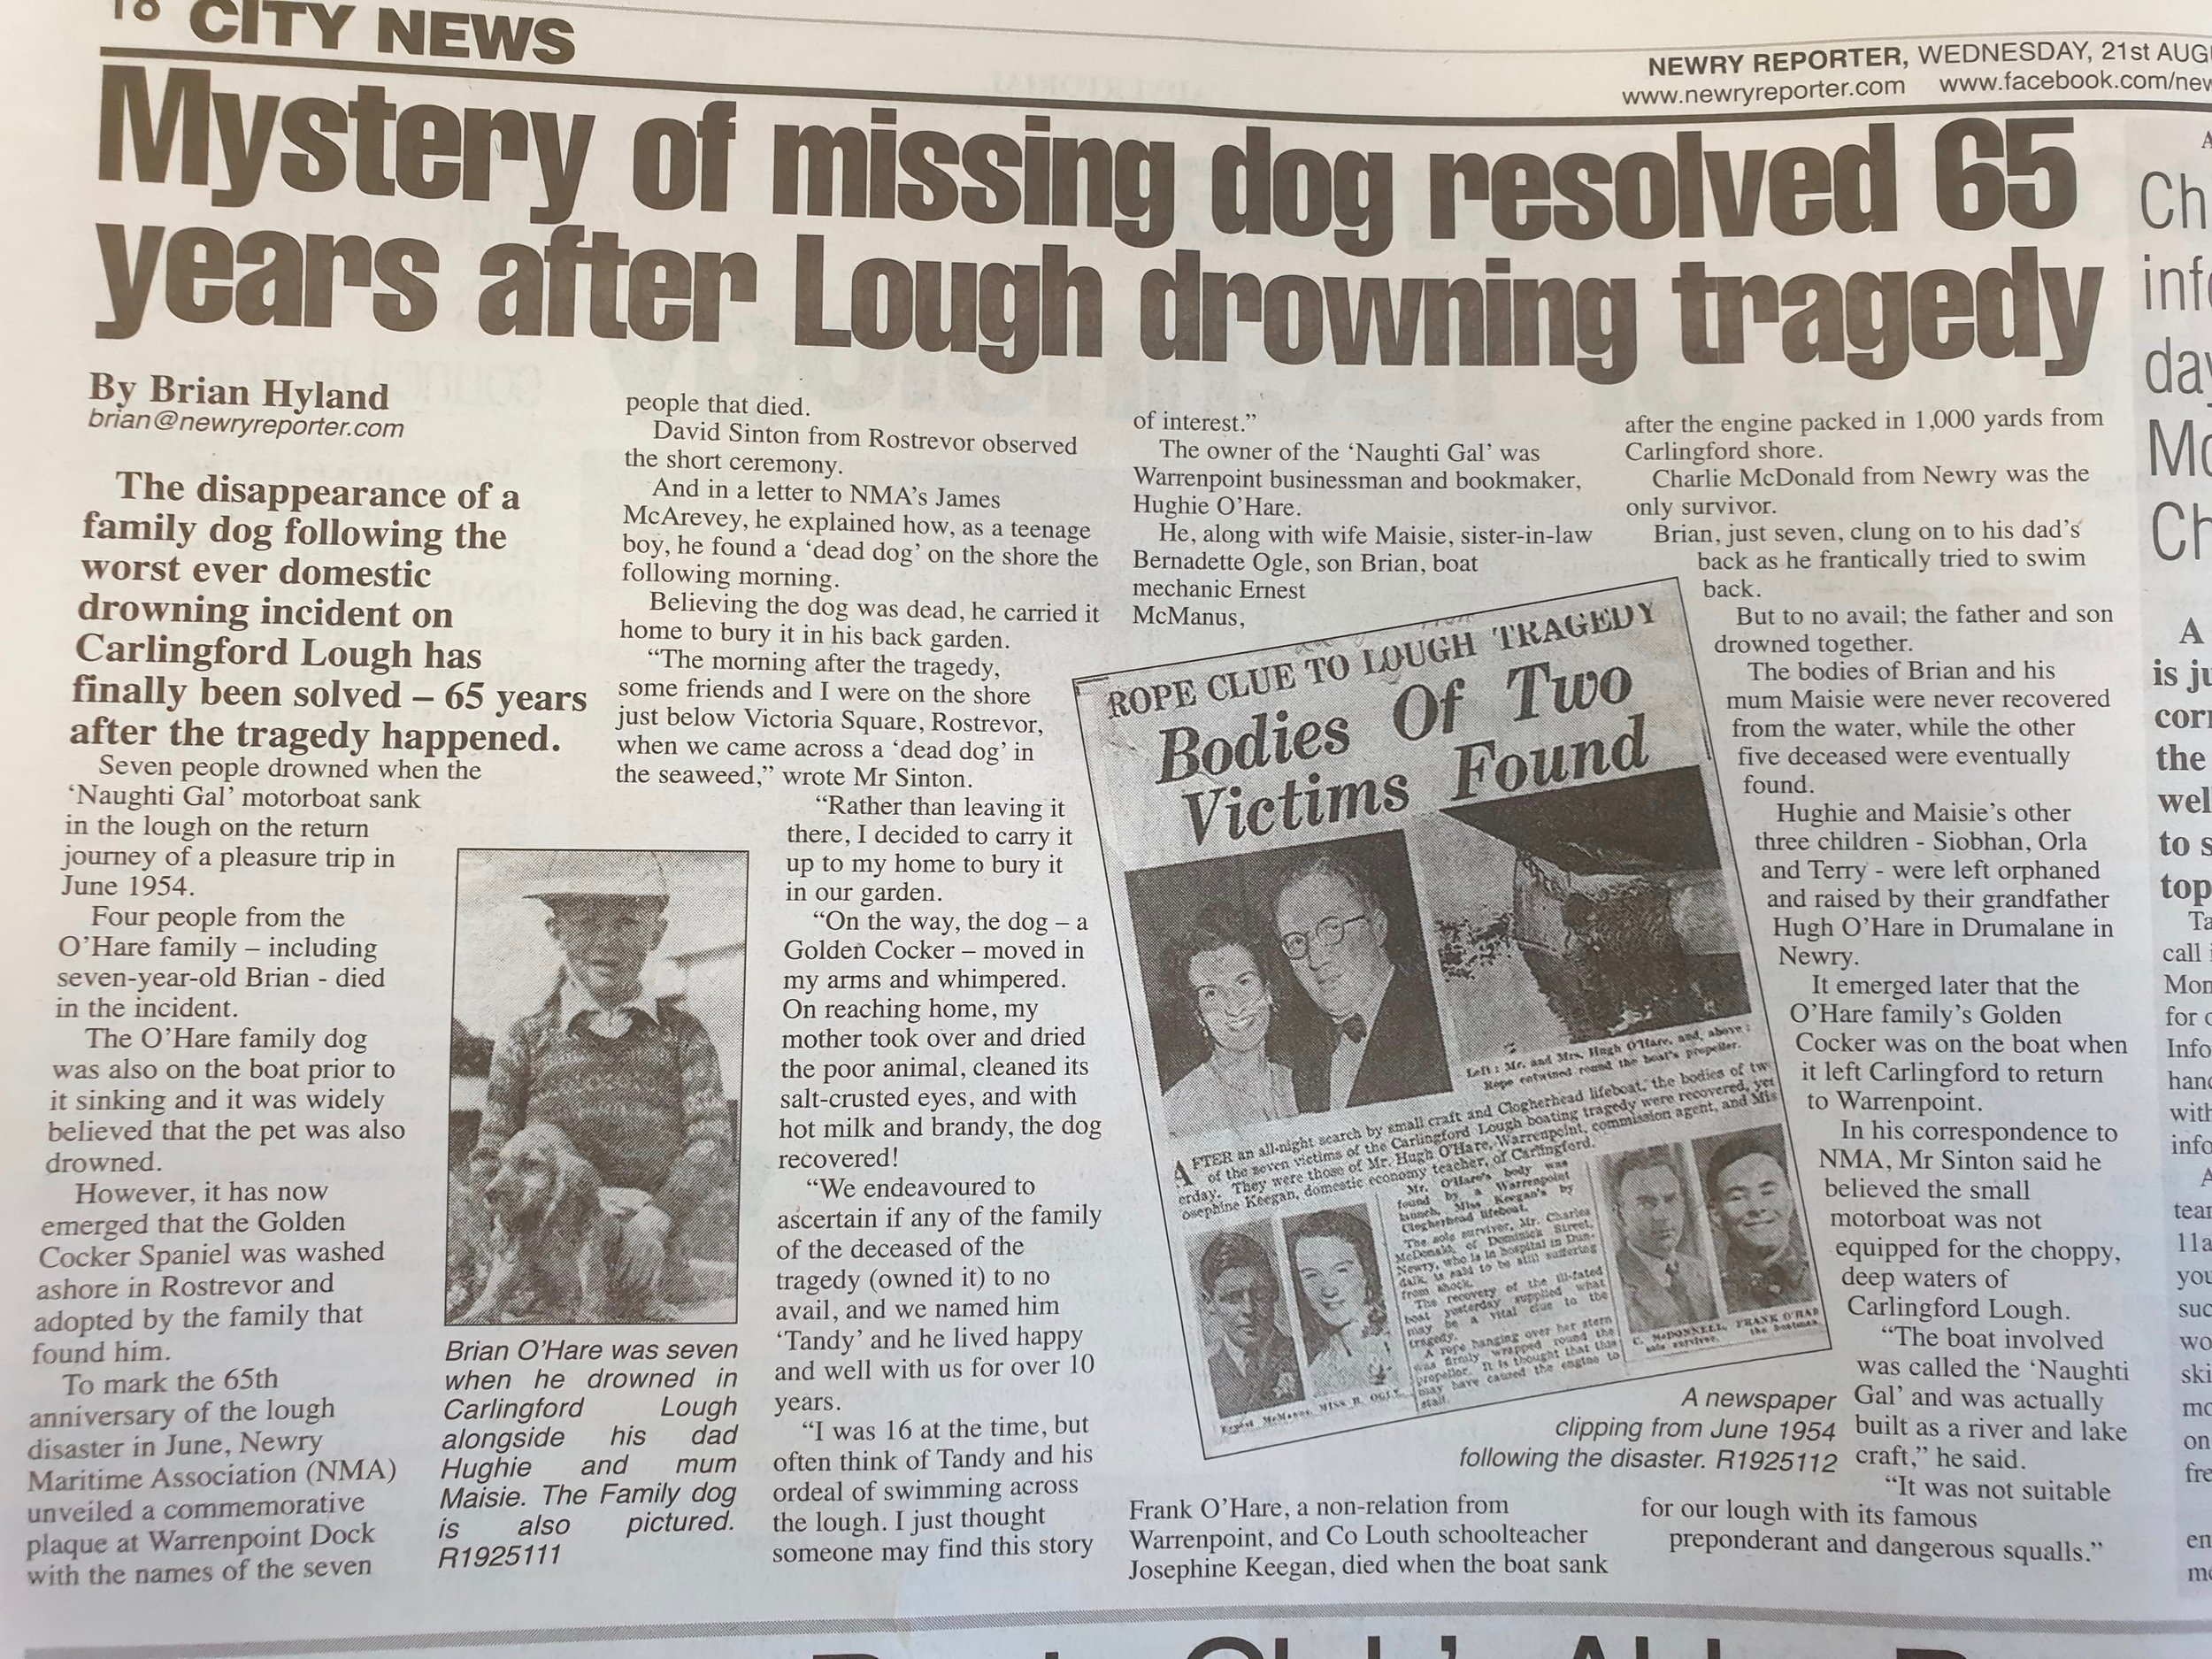 The article that appeared in the local paper in August 2019